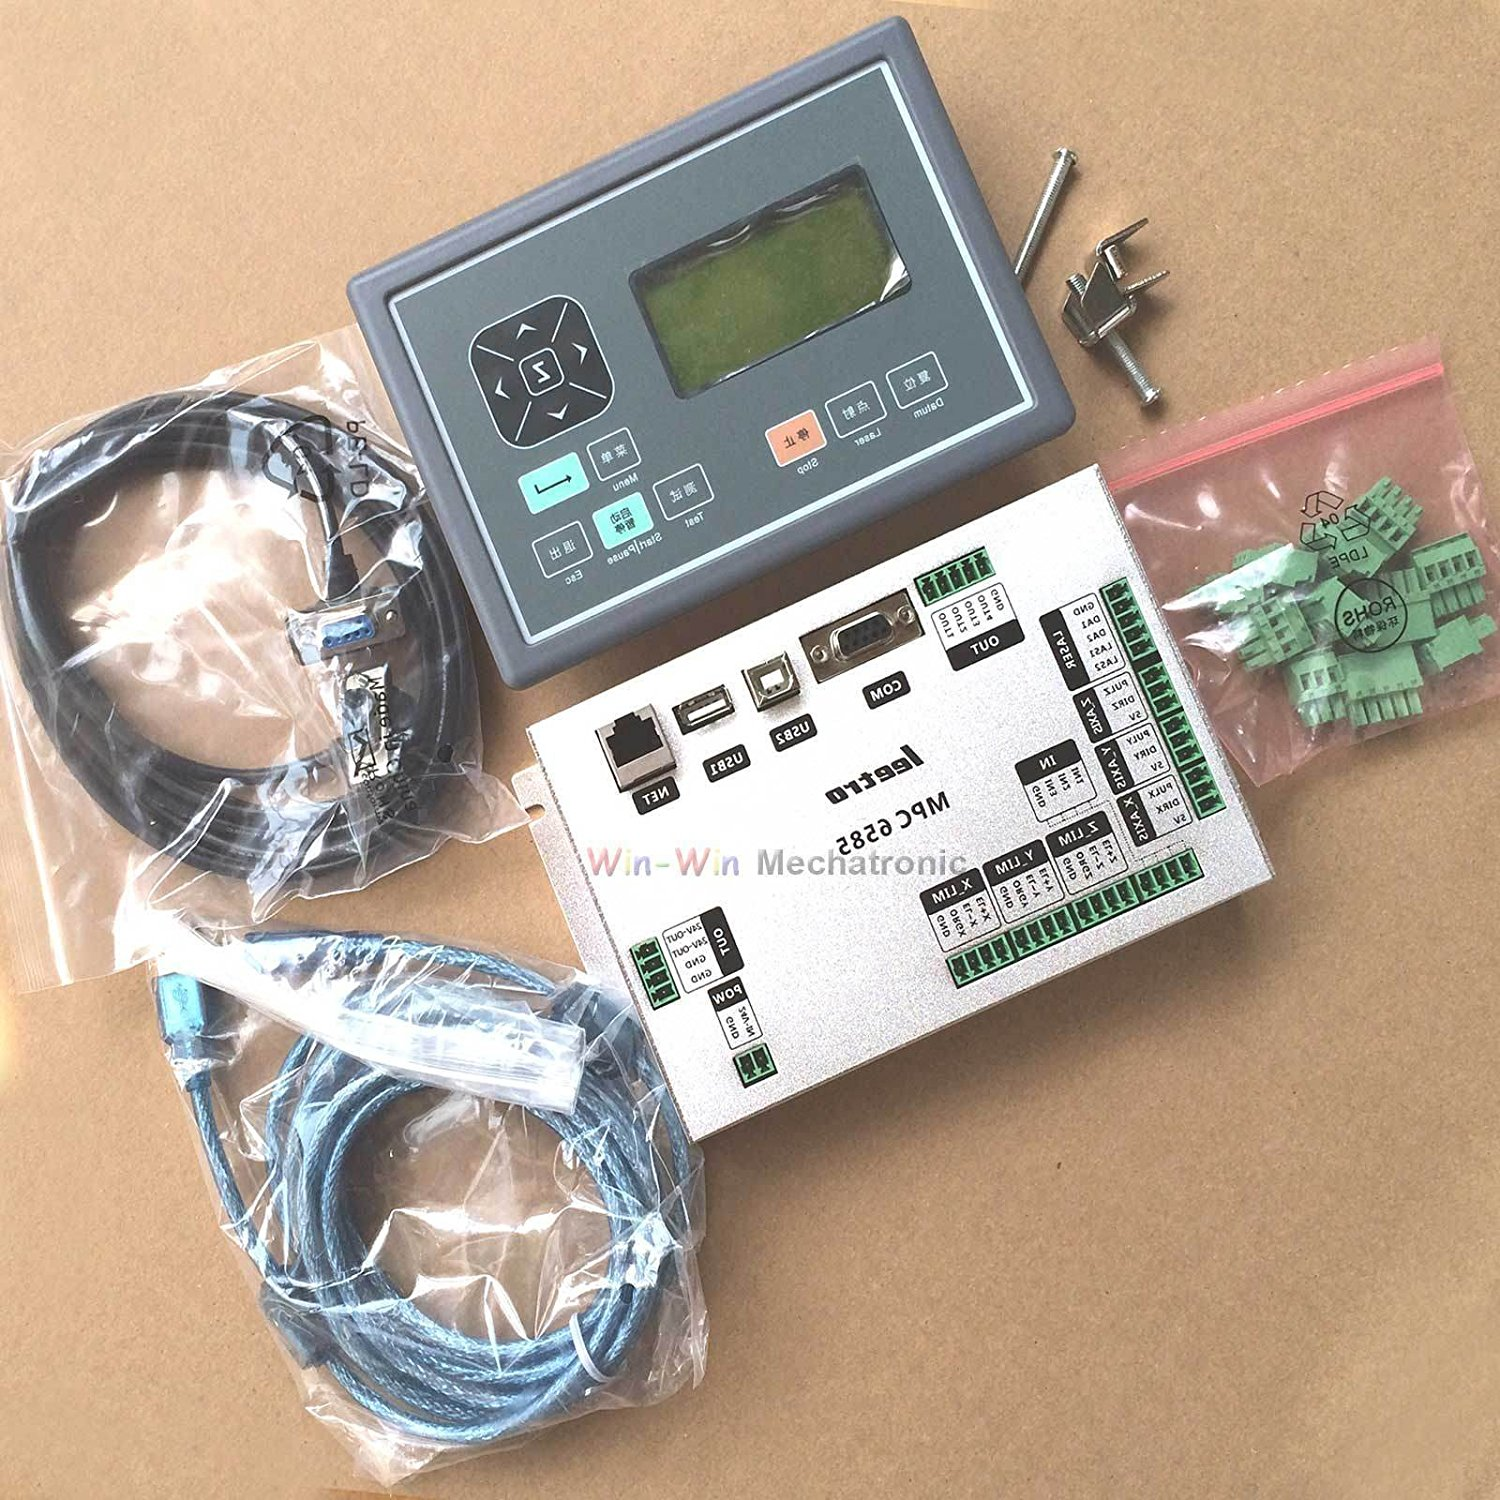 2015 Upgraded CO2 Laser Motion Control System MPC6585 based on MPC6515 & MPC6535